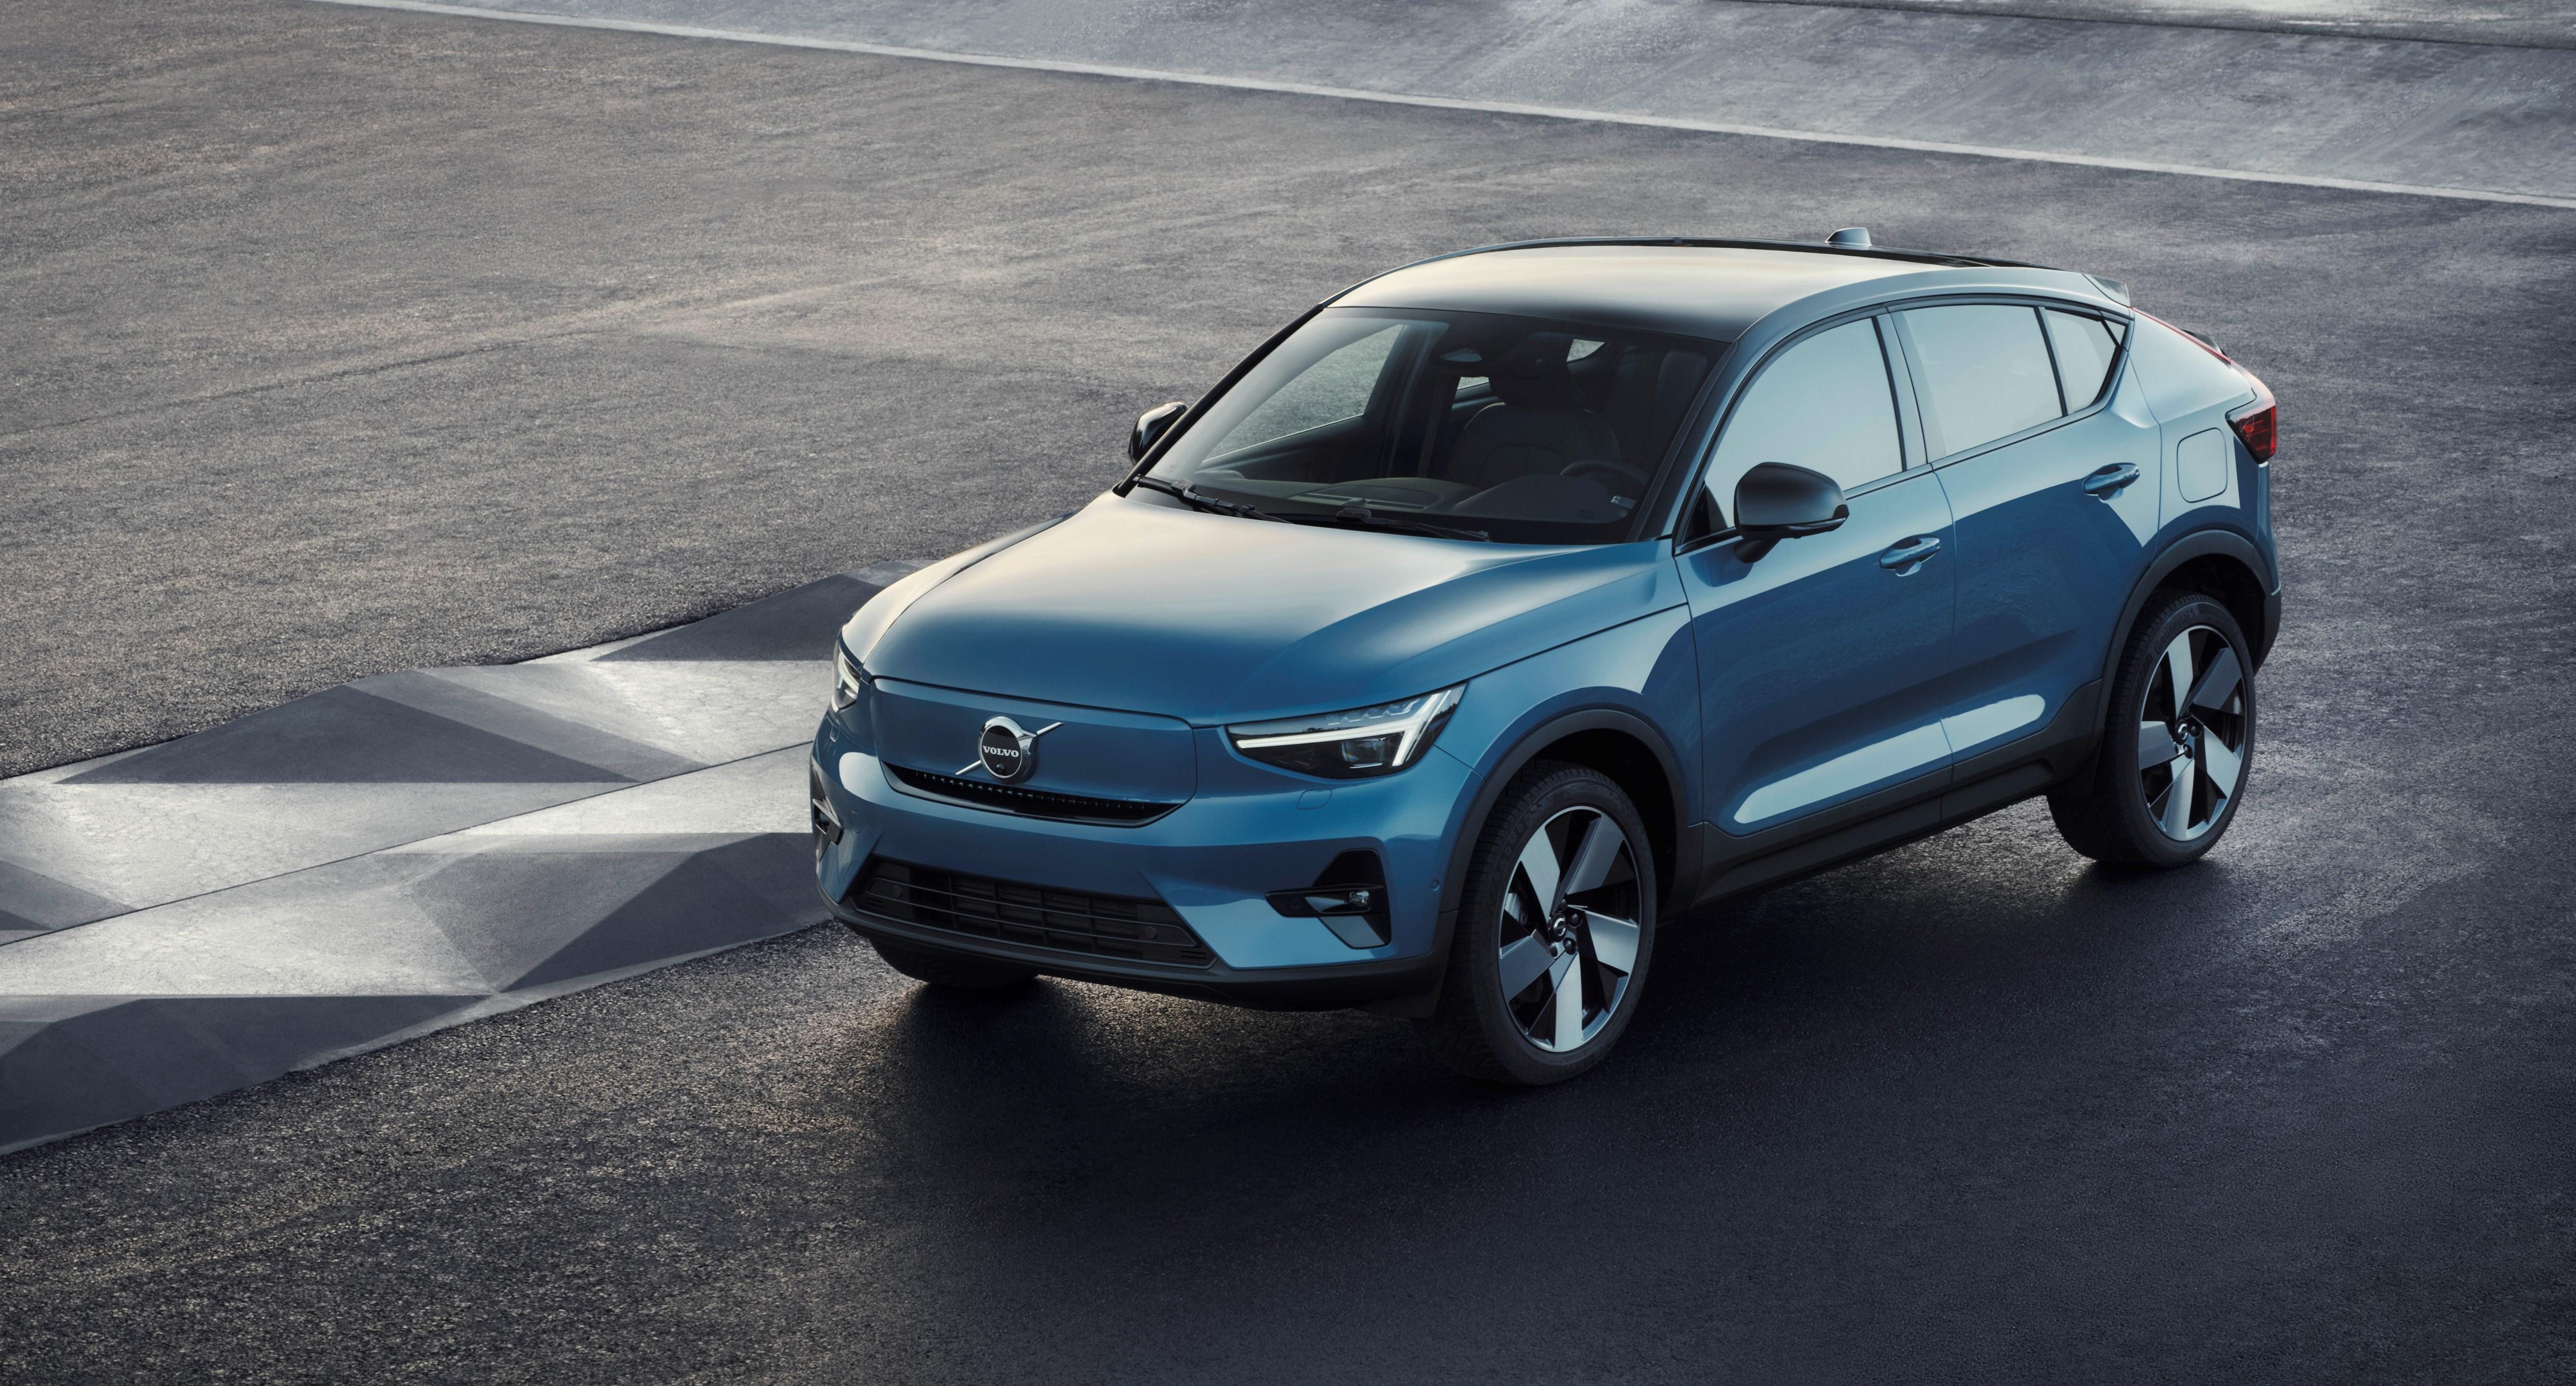 The 2022 C40 Recharge will be Volvo's first leather-free EV   Engadget